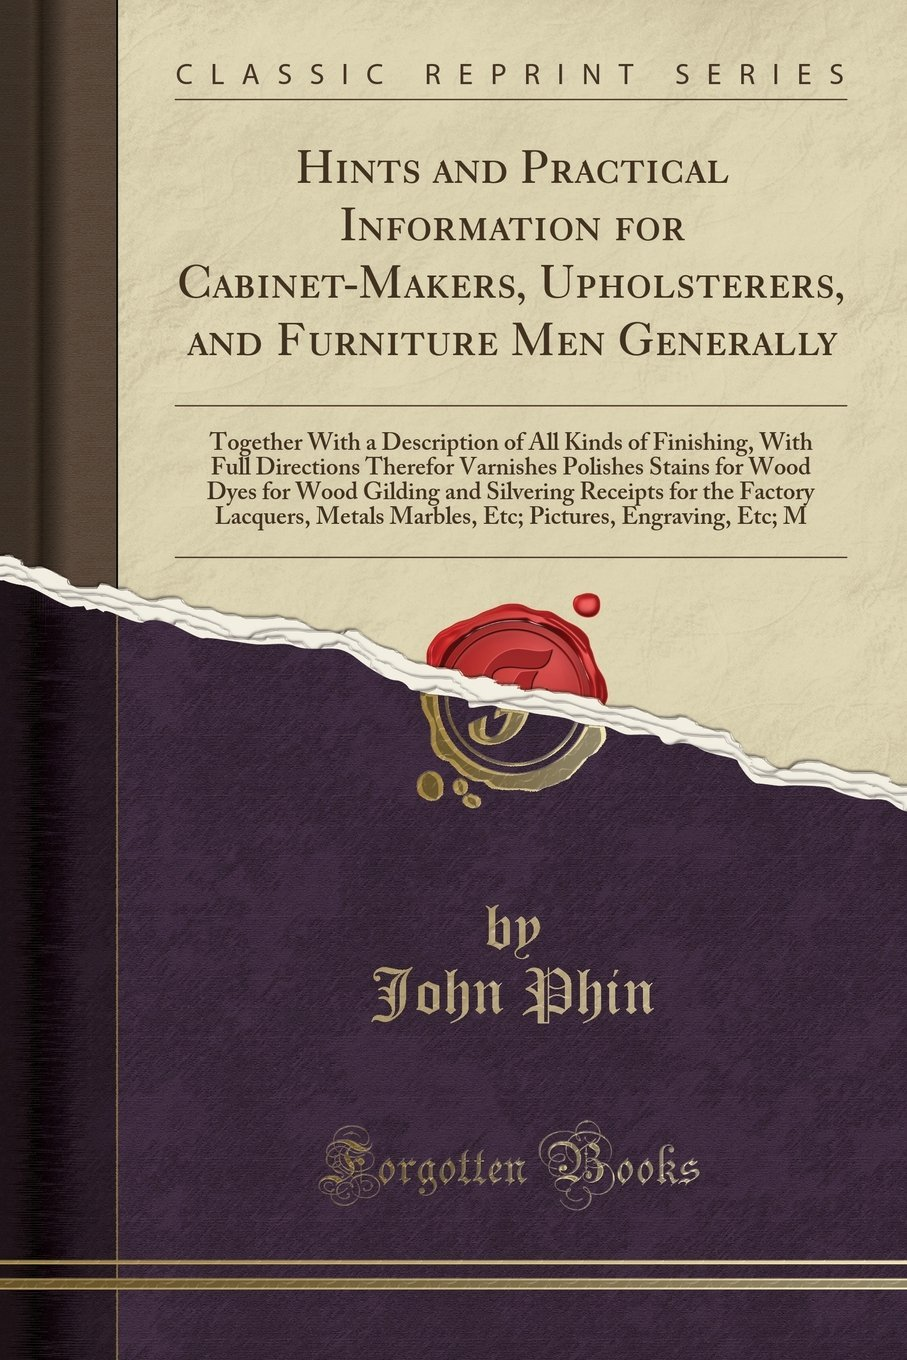 Download Hints and Practical Information for Cabinet-Makers, Upholsterers, and Furniture Men Generally: Together With a Description of All Kinds of Finishing. Wood Dyes for Wood Gilding and Silvering Rece pdf